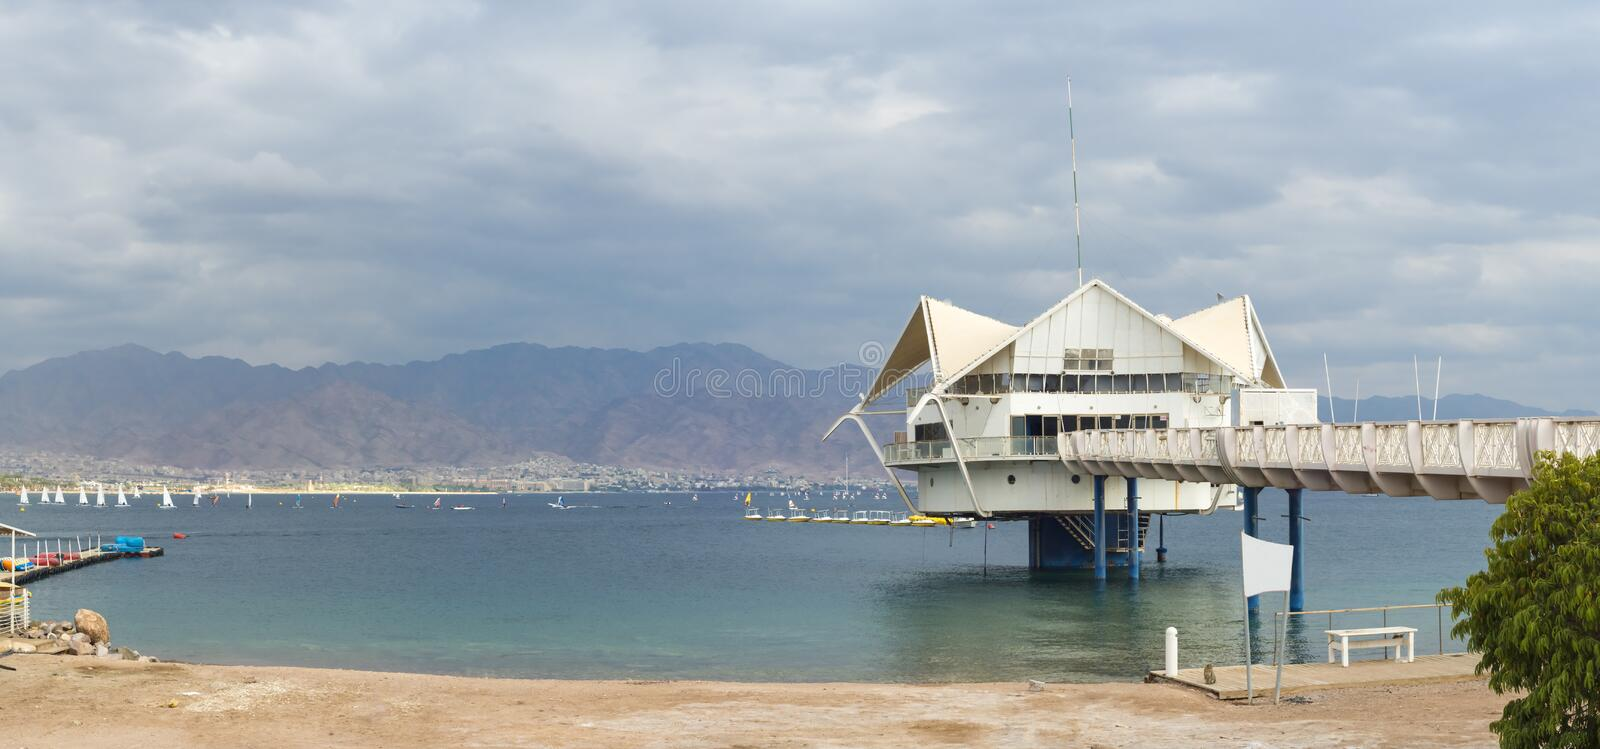 Morning view on the gulf of Aqaba near Eilat royalty free stock photography